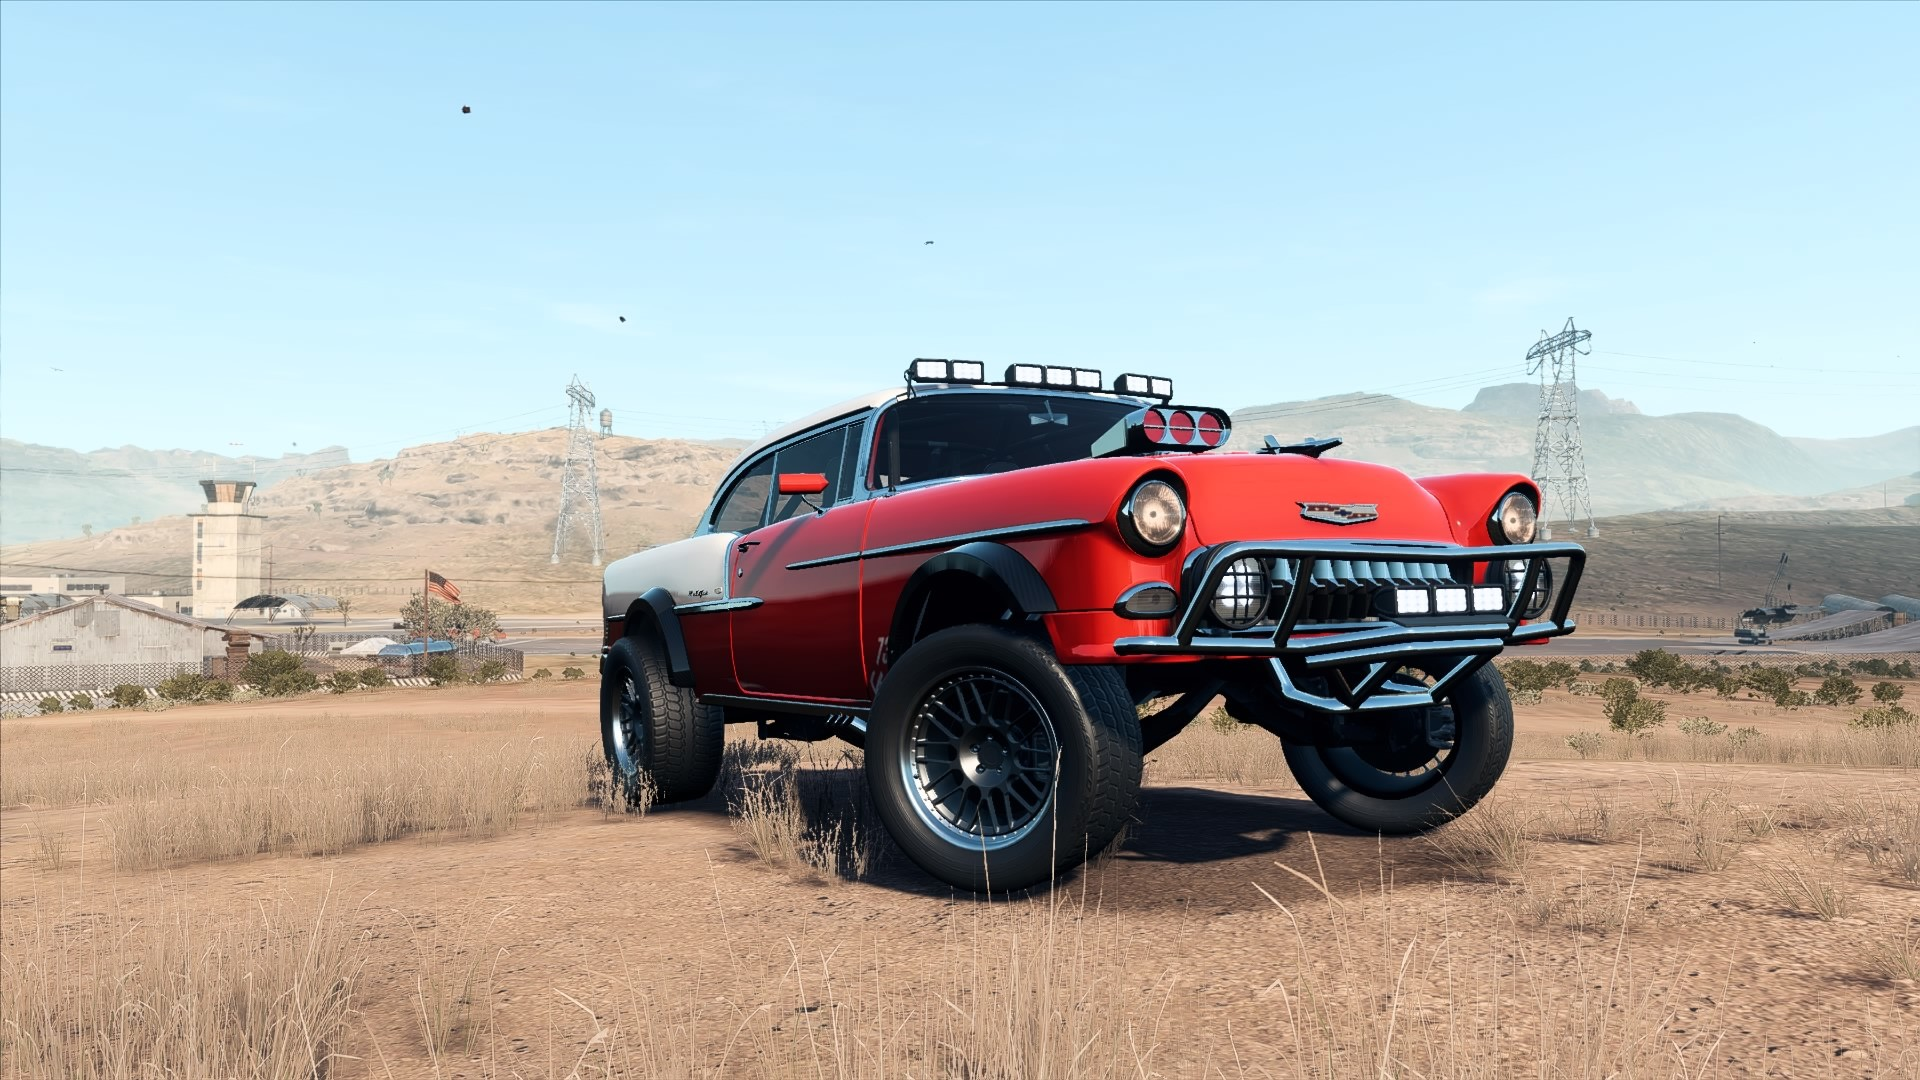 ArtStation - NFS: Payback, Chevy Bel Air Derelict Super Build, The